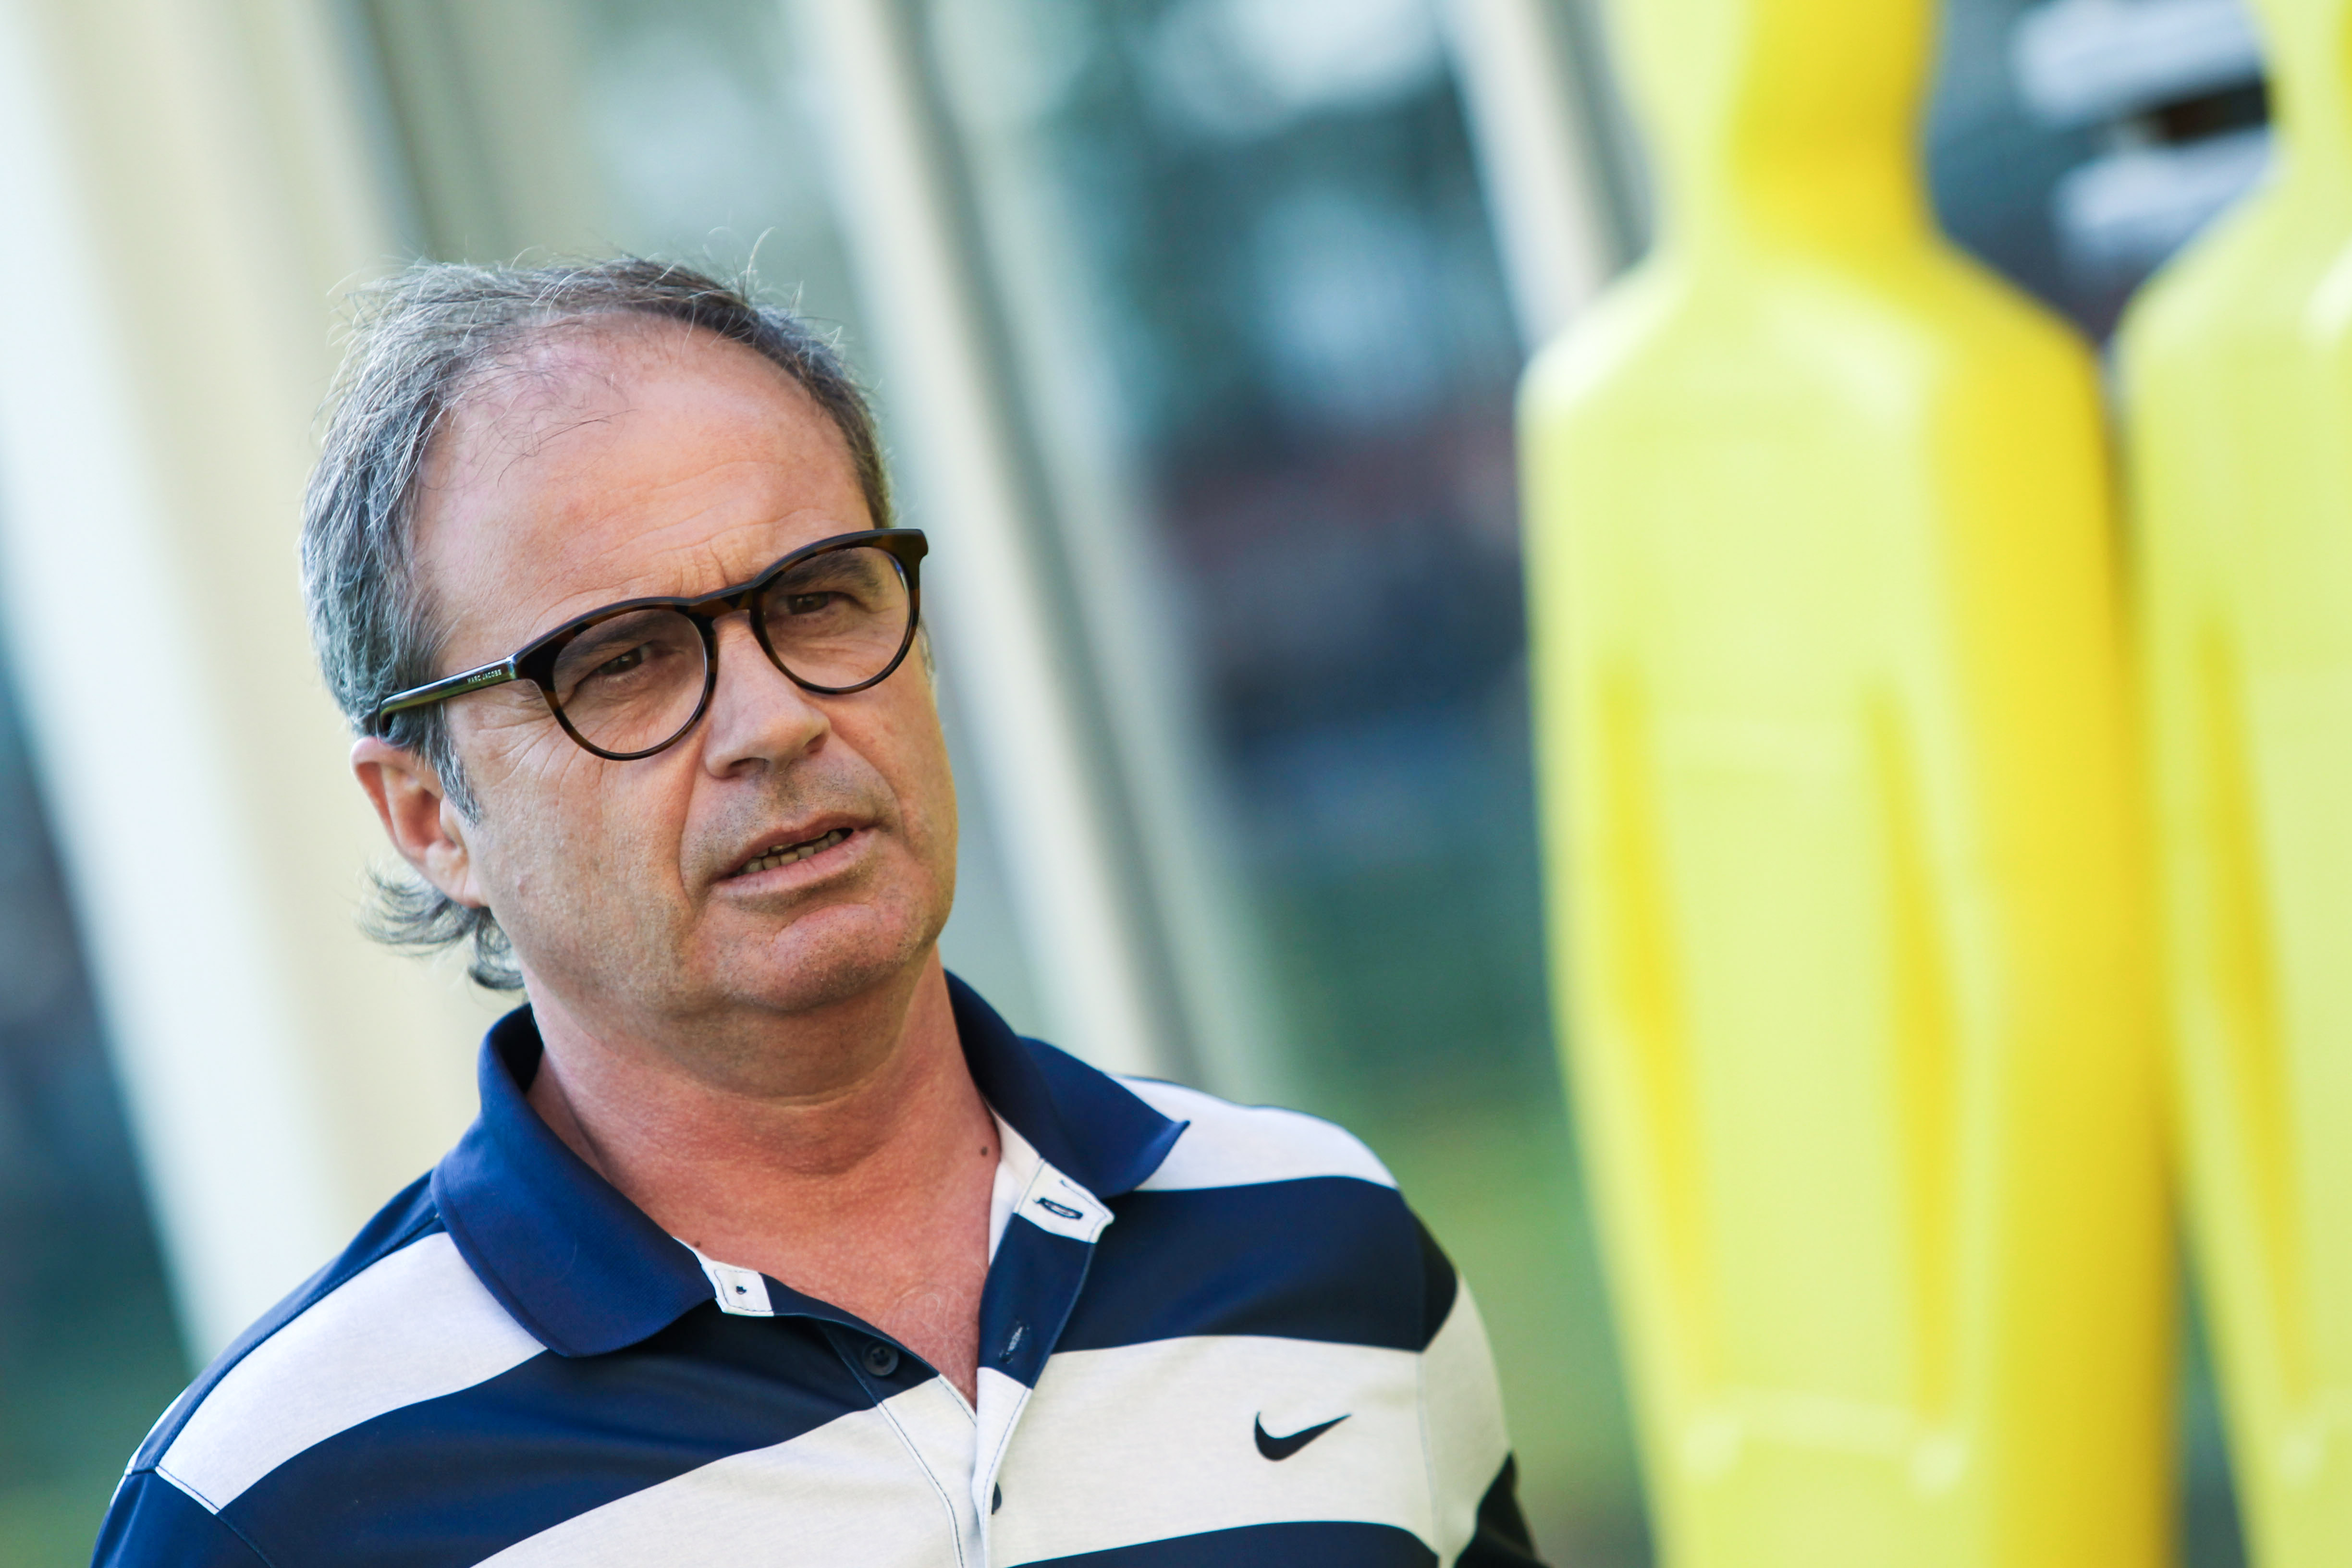 Chelsea-linked Luis Campos to stay Lille sporting director despite 'absolutely huge bids'